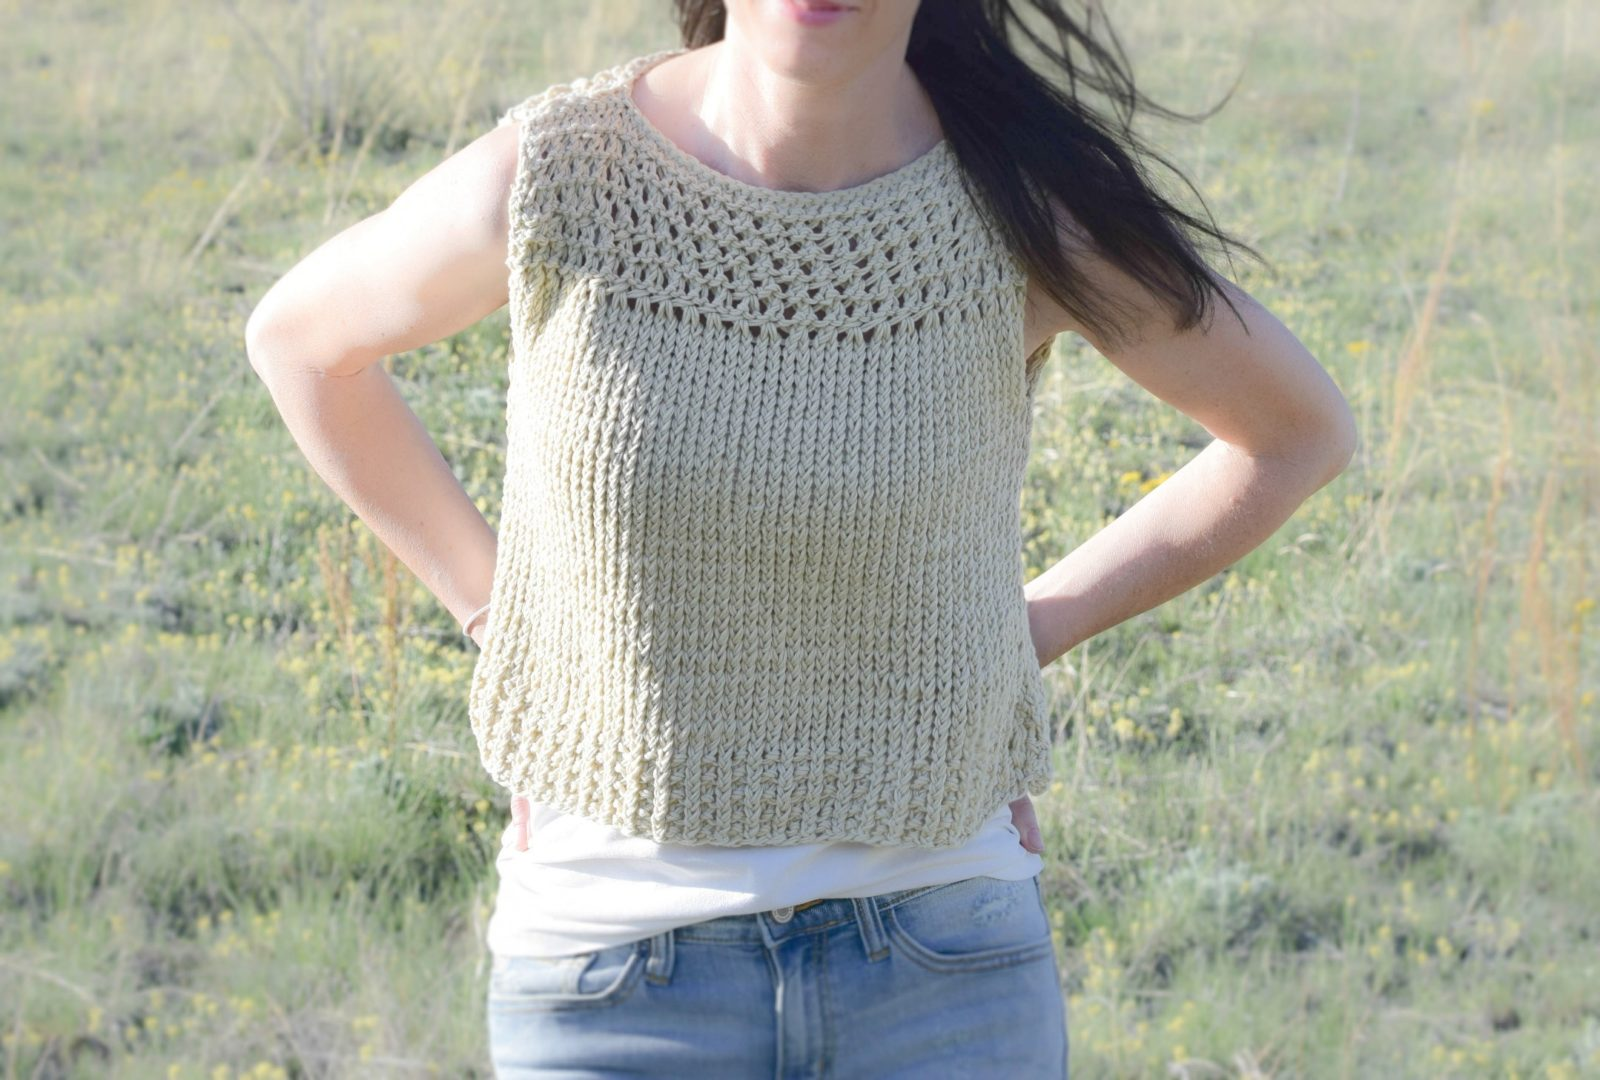 Summer Knitting Patterns : Summer Vacation Knit Top Pattern   Mama In A Stitch